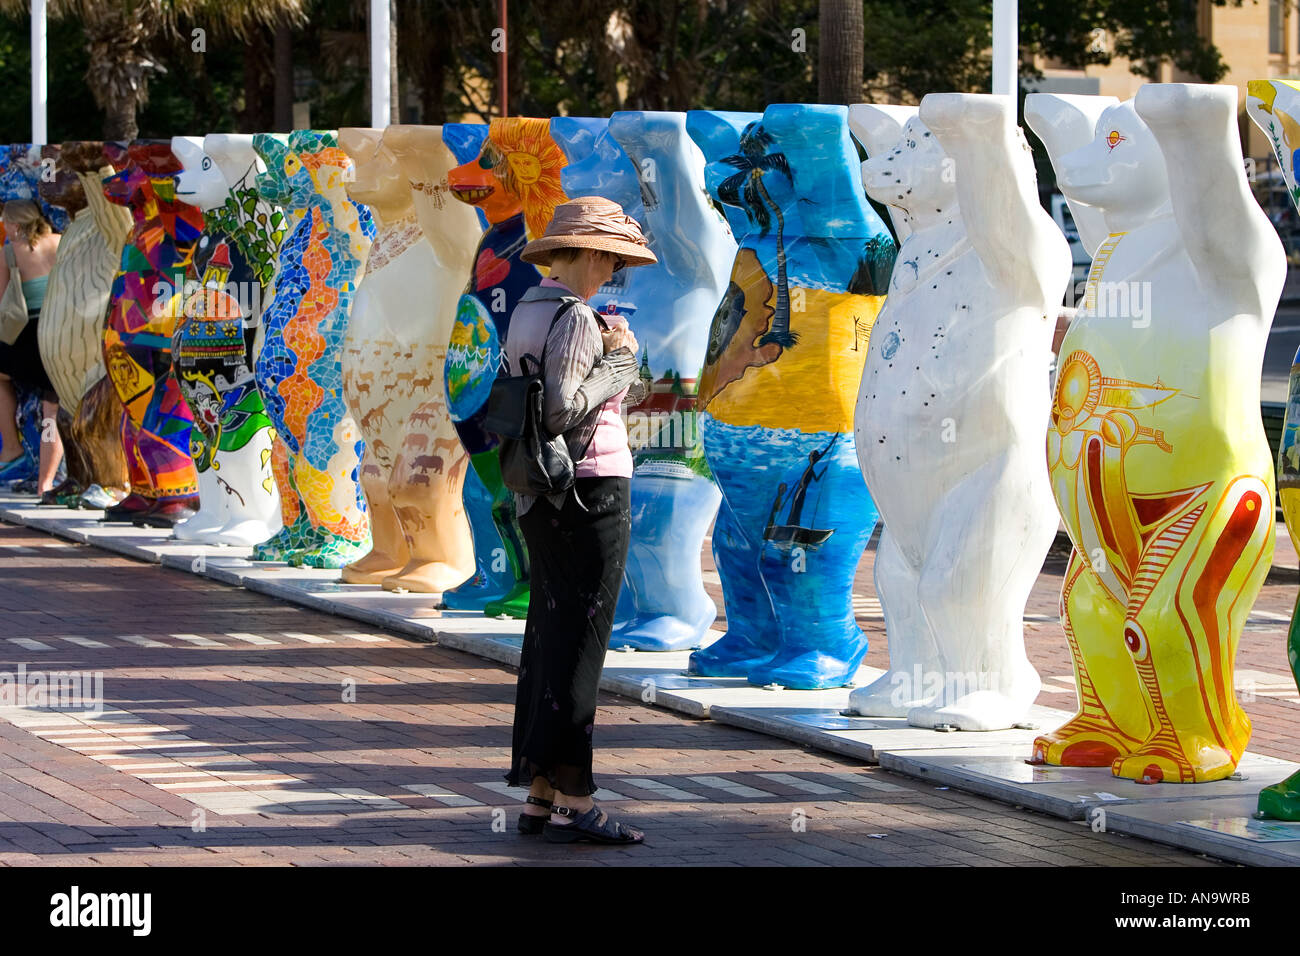 Tourist admires the Unicef charity fundraising United Buddy Bears in Sydney New South Wales Australia Stock Photo